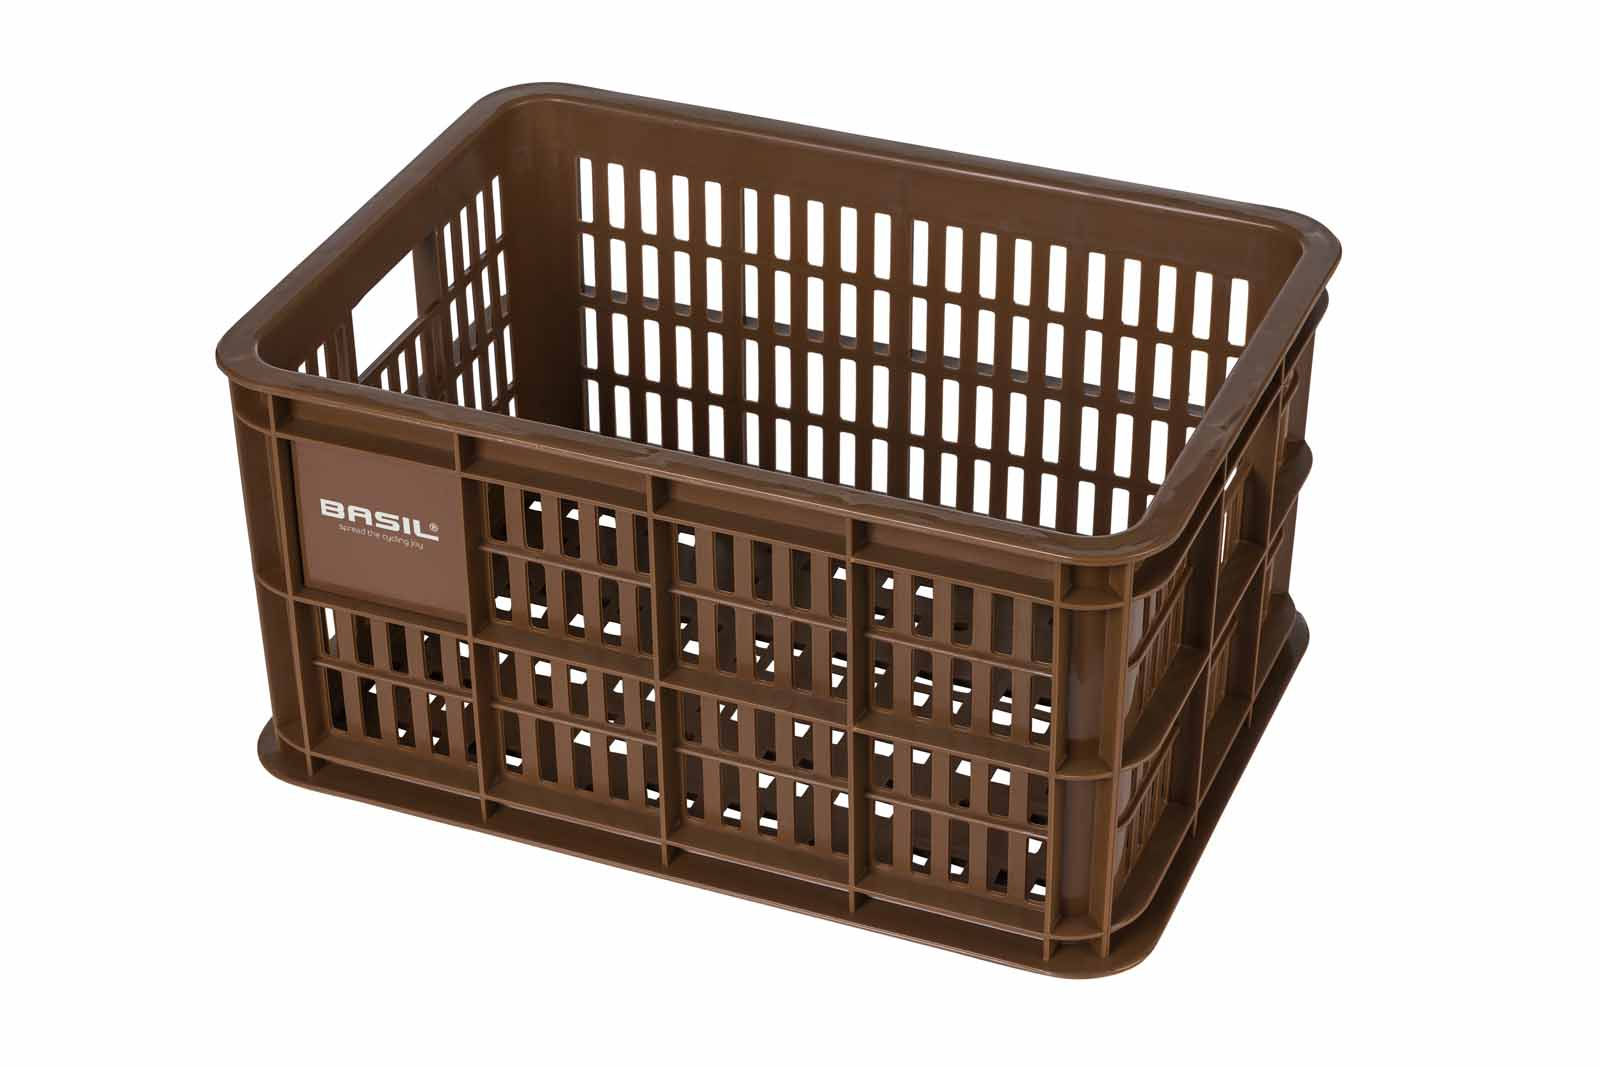 Basil V.R.-Korb Crate S MIK, saddle brown - Bild 1